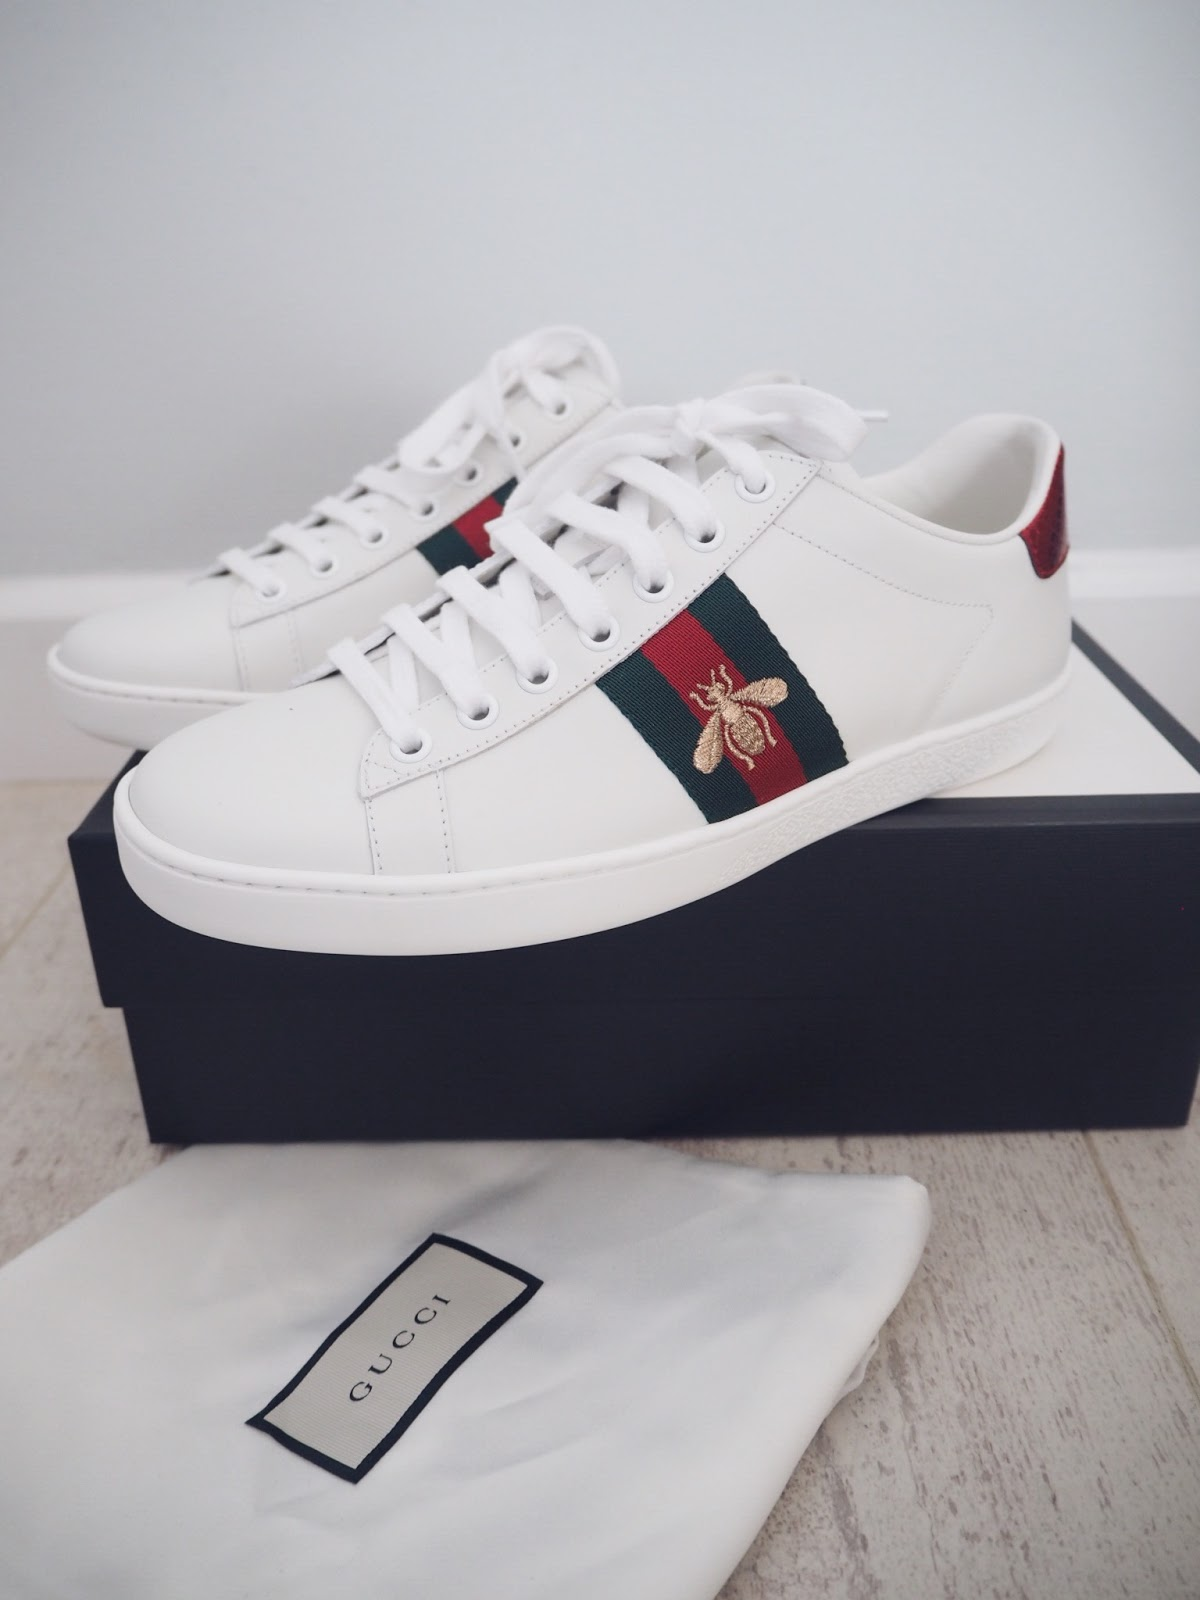 6f8b599a27a I also really like the Studded Pearl Sneakers and the Rhyton Chunky Sneakers.  Gucci do detachable patches to personalise and change up your trainers too  ...